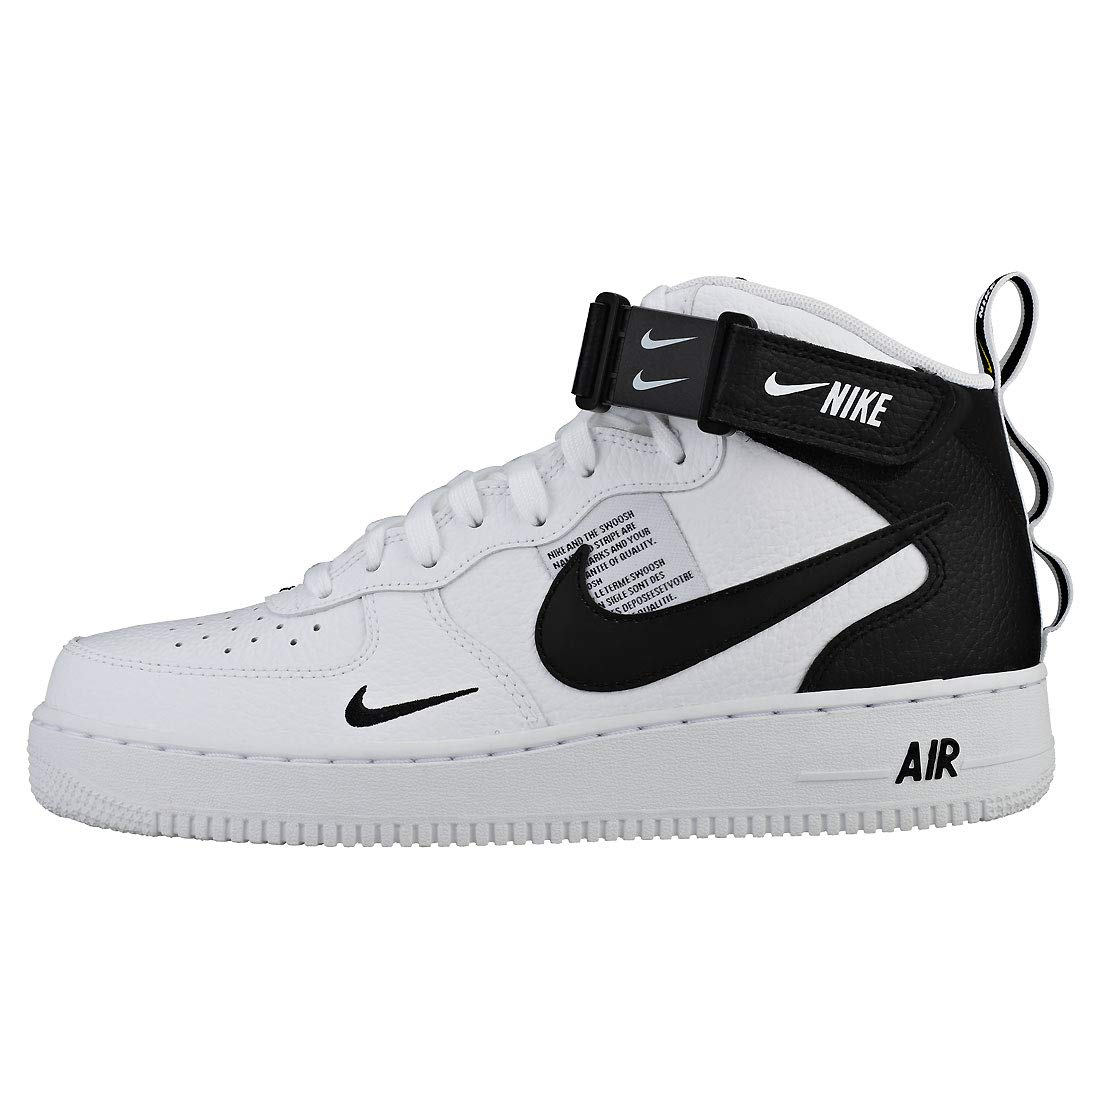 NIKE Air Force 1 Mid 07 Lv8, Zapatillas de Gimnasia para Hombre: Amazon.es: Zapatos y complementos